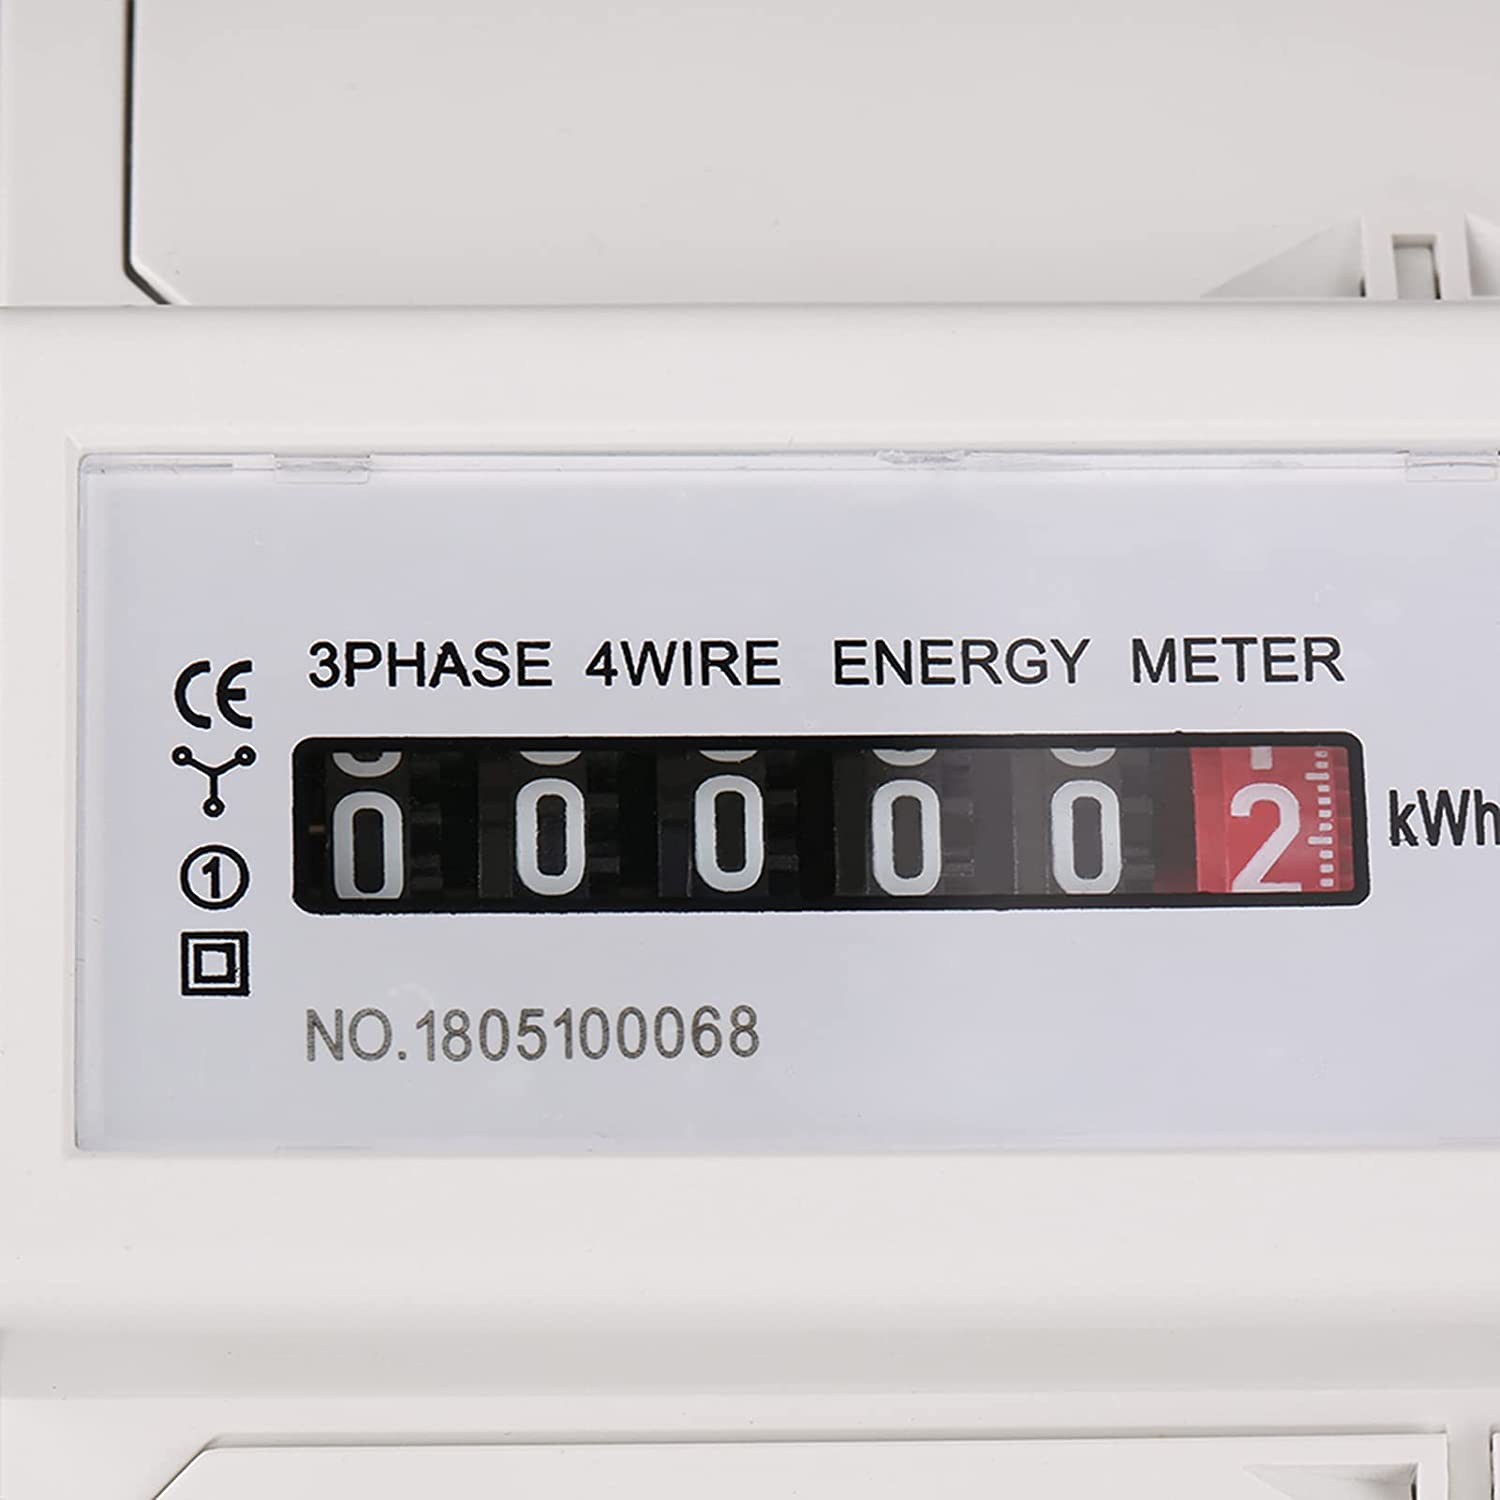 Uxsiya Digital Today's only DIN Rail OFFer Electric Meter KWh Me Instructions 5 LED